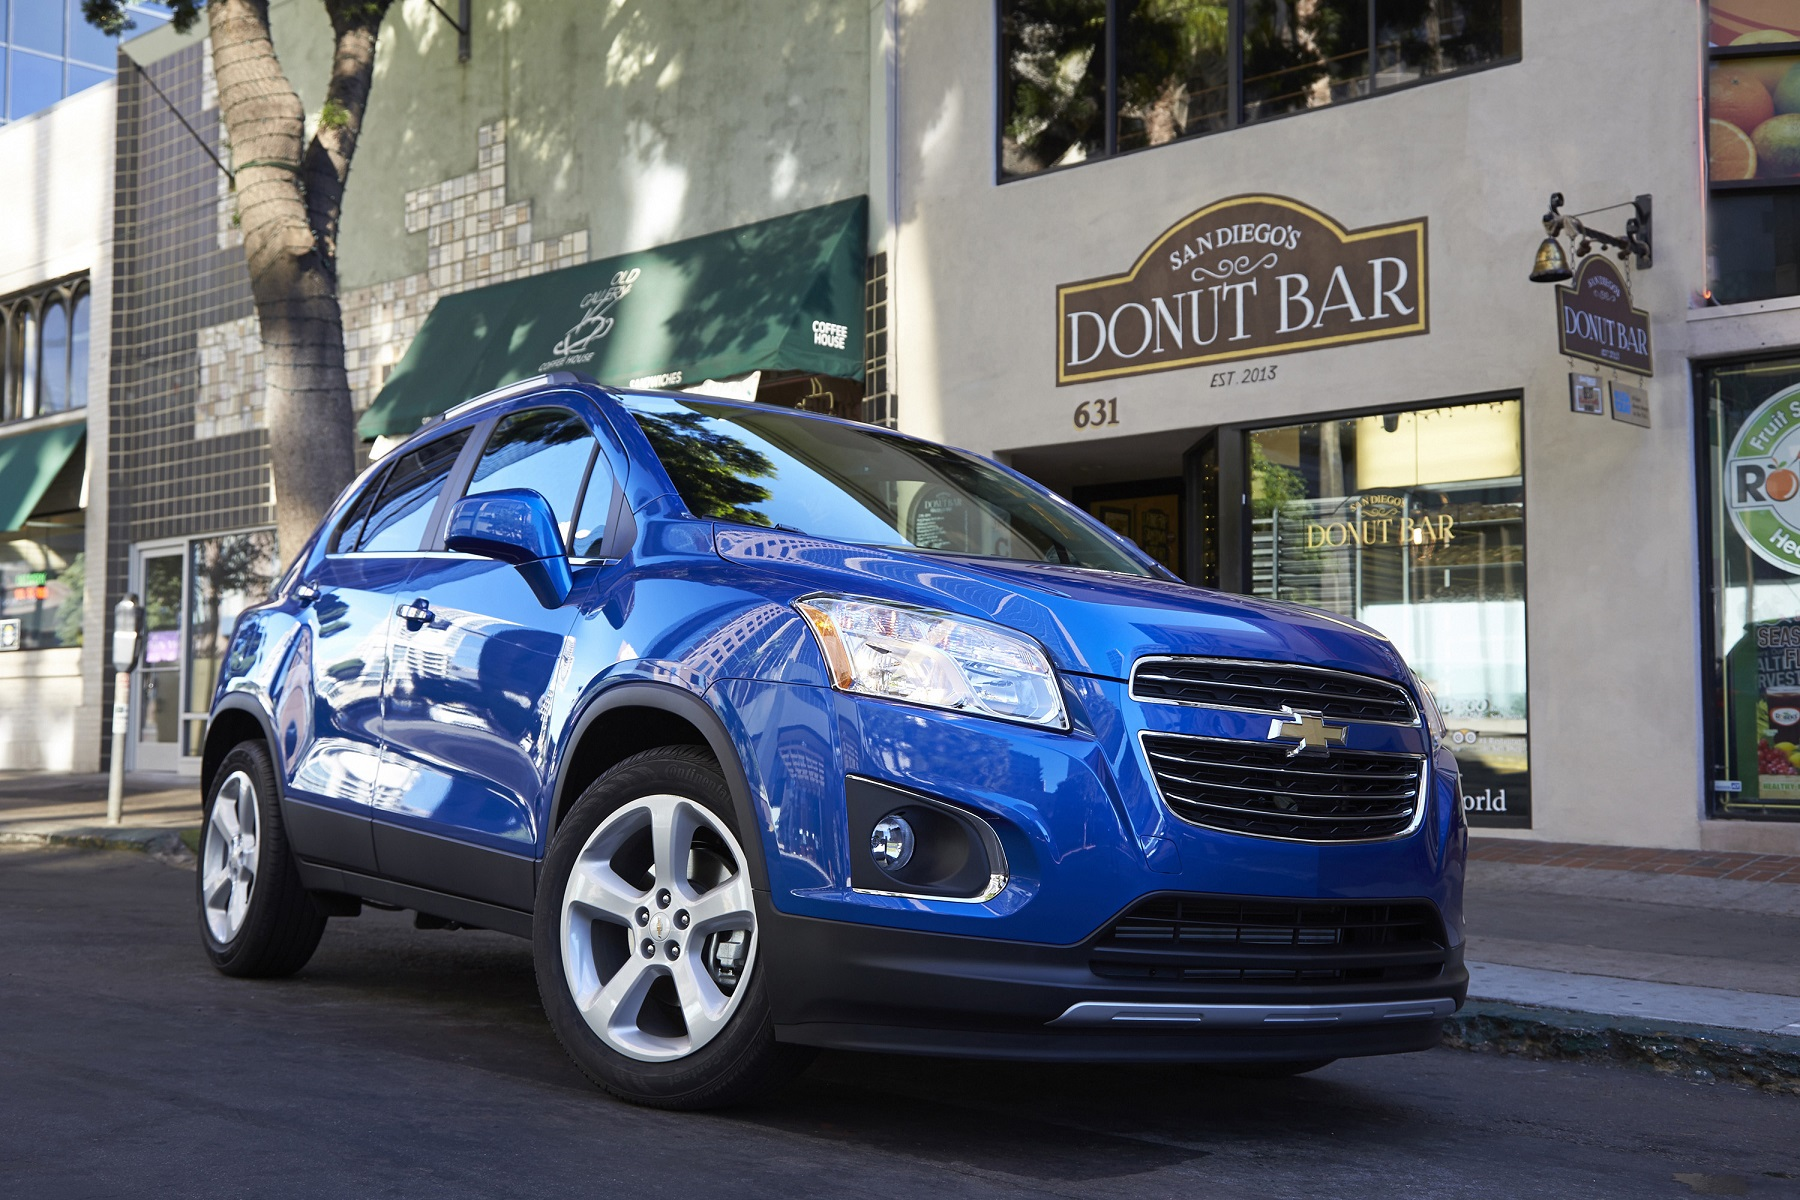 Manufacturer photo: The 2015 Trax is Chevrolet's seventh small vehicle launch in four years, a diverse lineup that's seen the brand's share of the small-, compact- and mini-car segments more than triple.